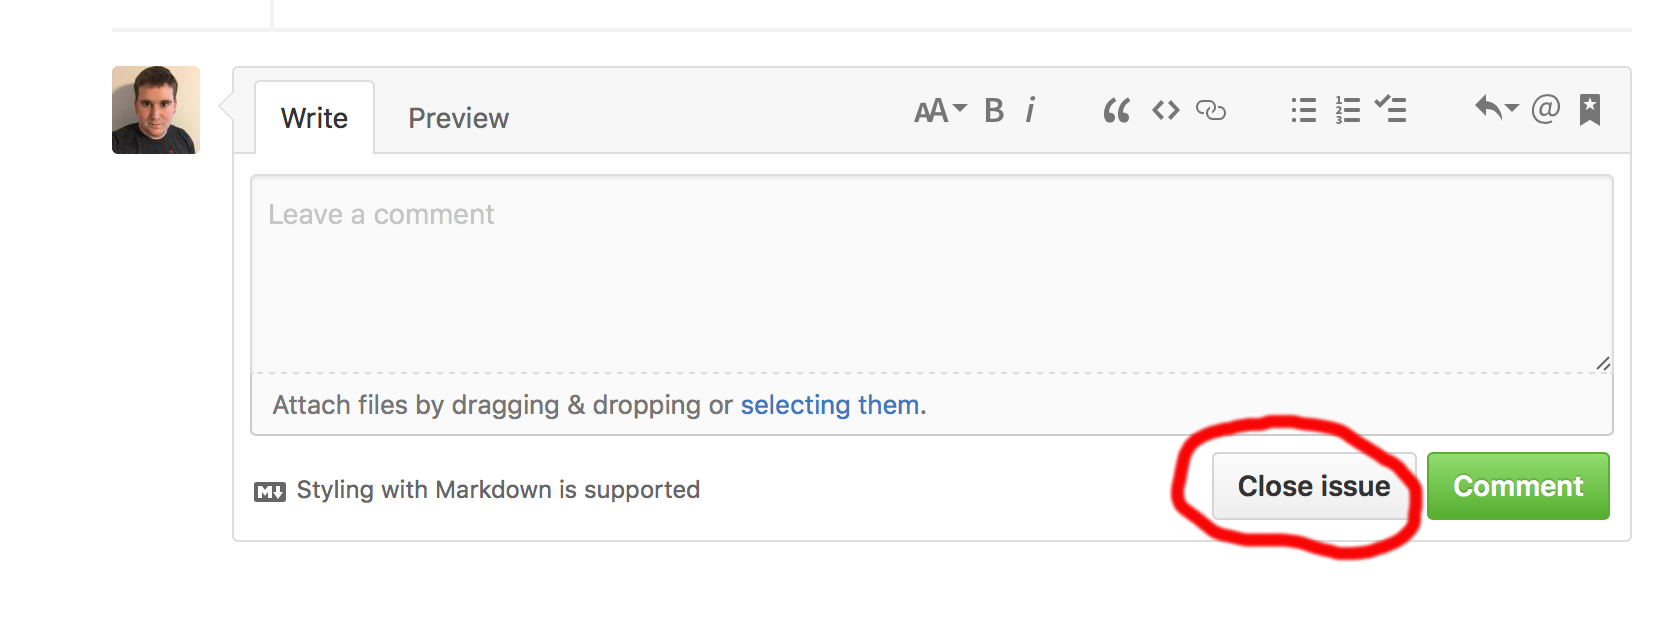 GitHub screenshot showing issue close button